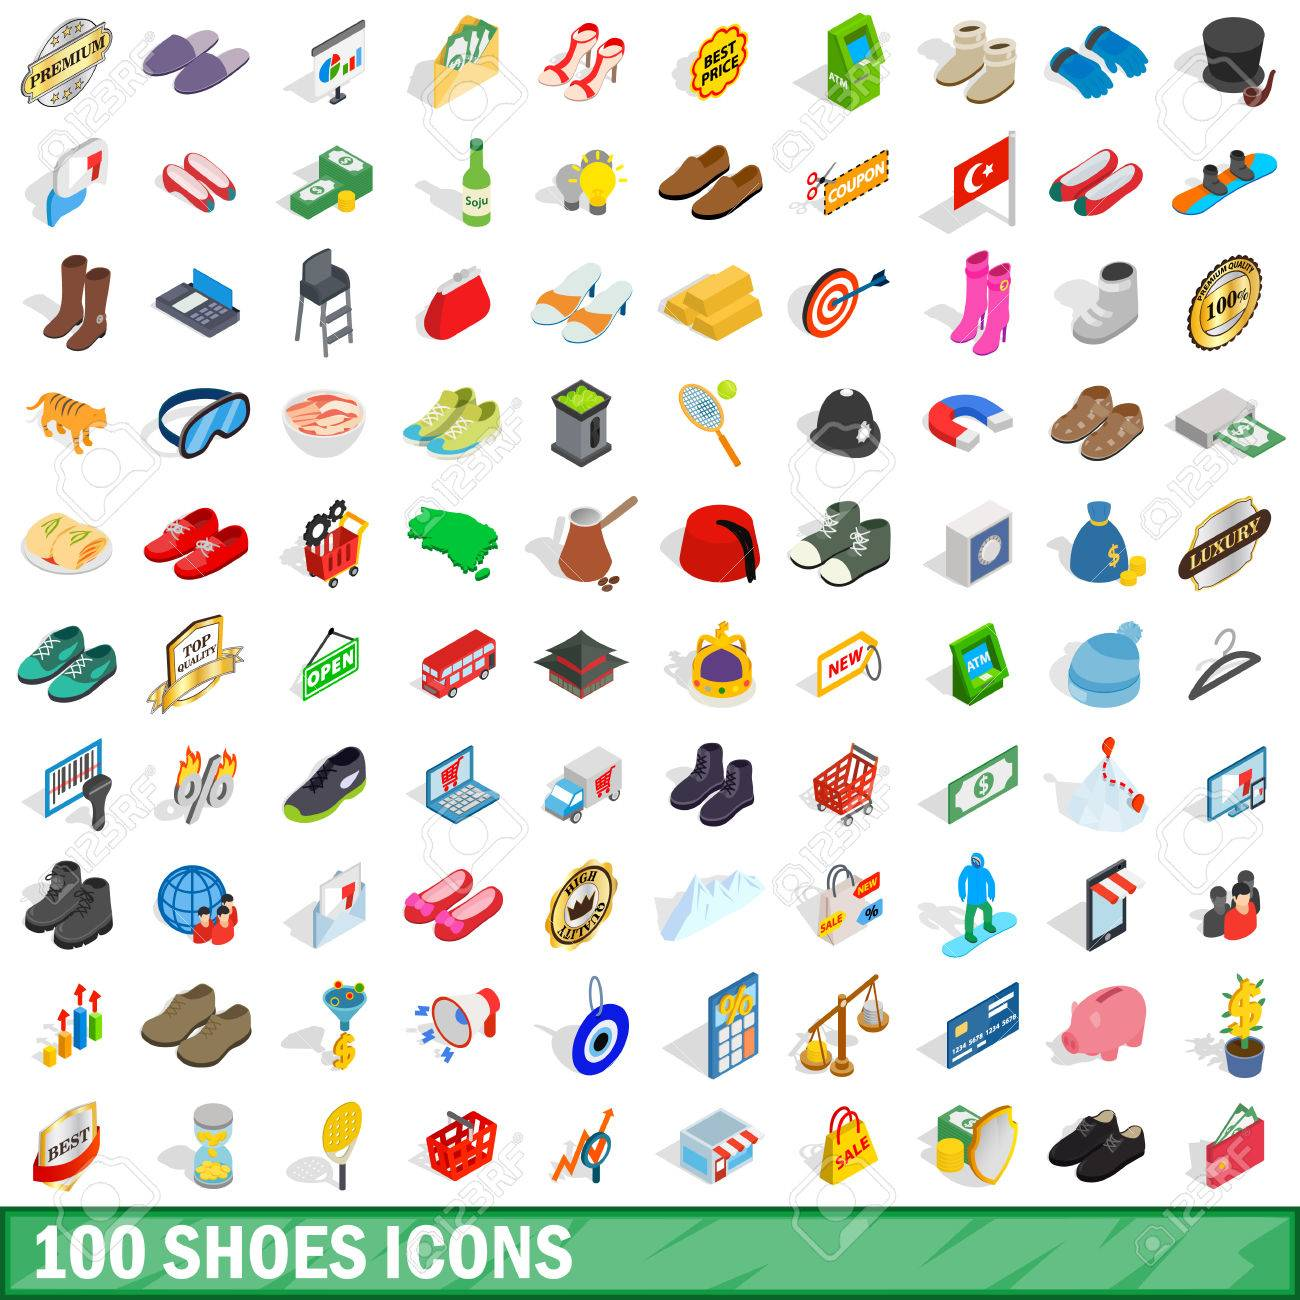 5de143fb 100 Shoes Icons Set, Isometric 3d Style Royalty Free Cliparts ...